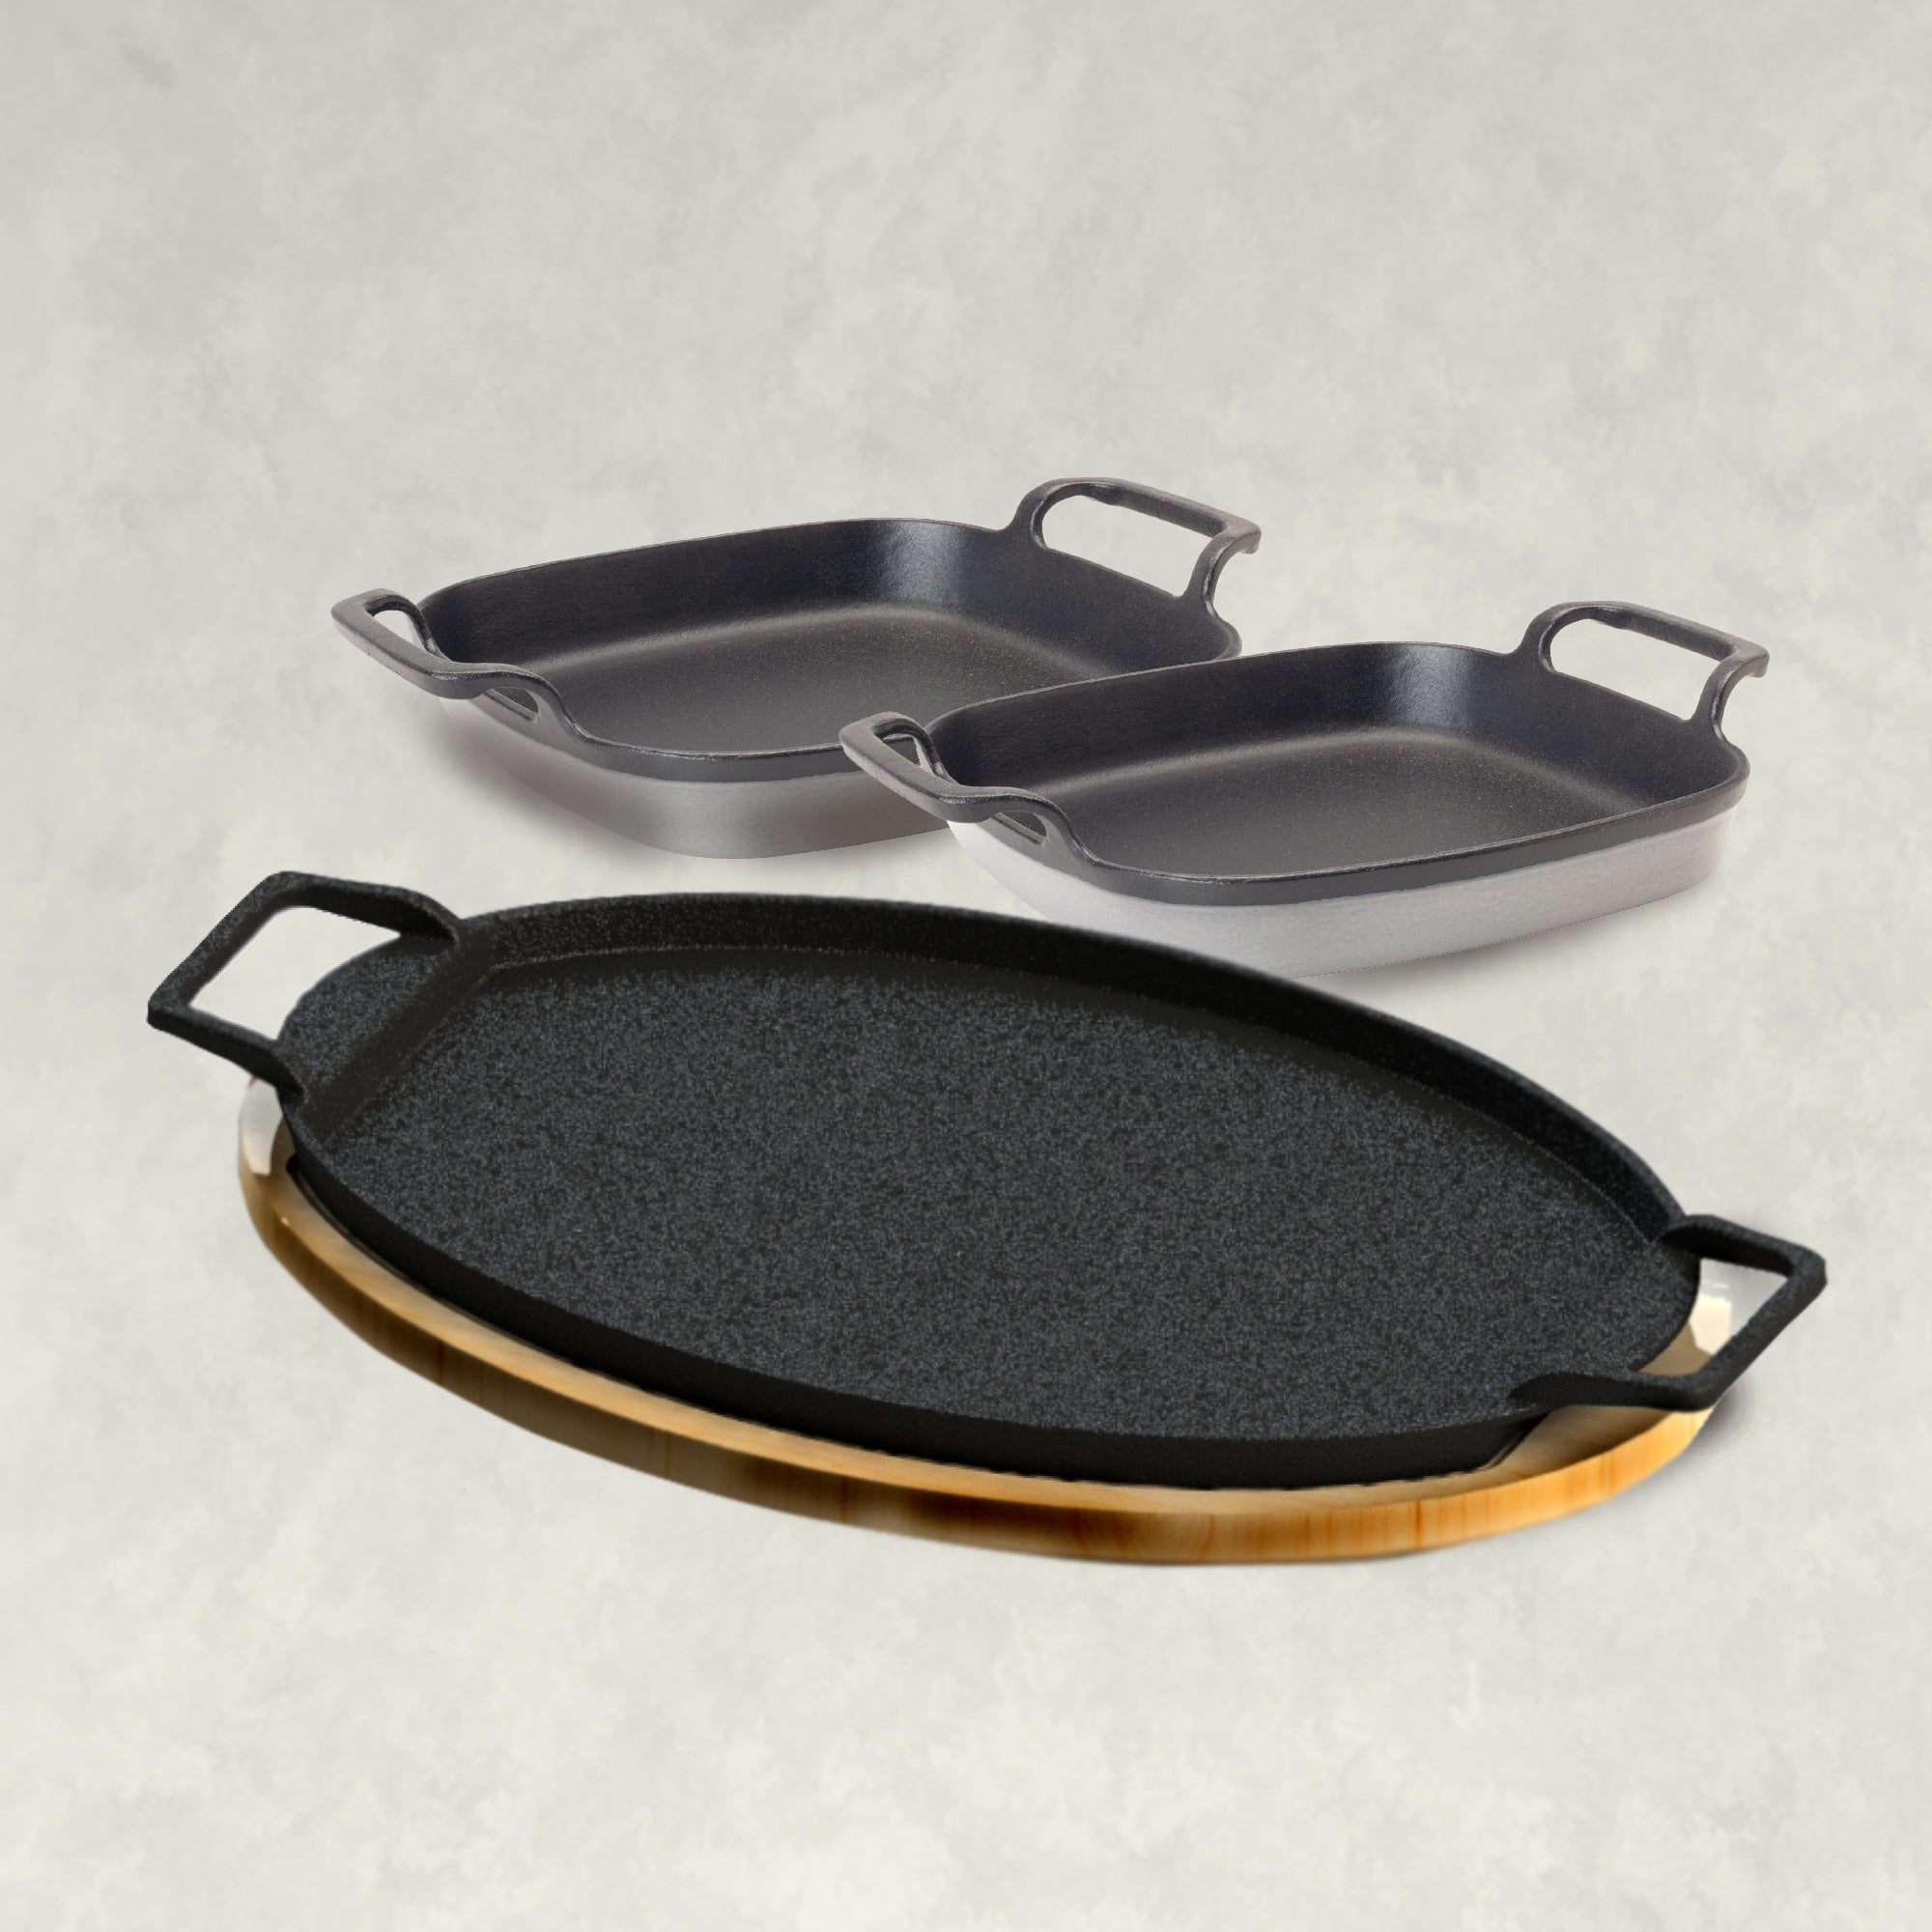 Fiesta Fajita Pan Set, weathered gray